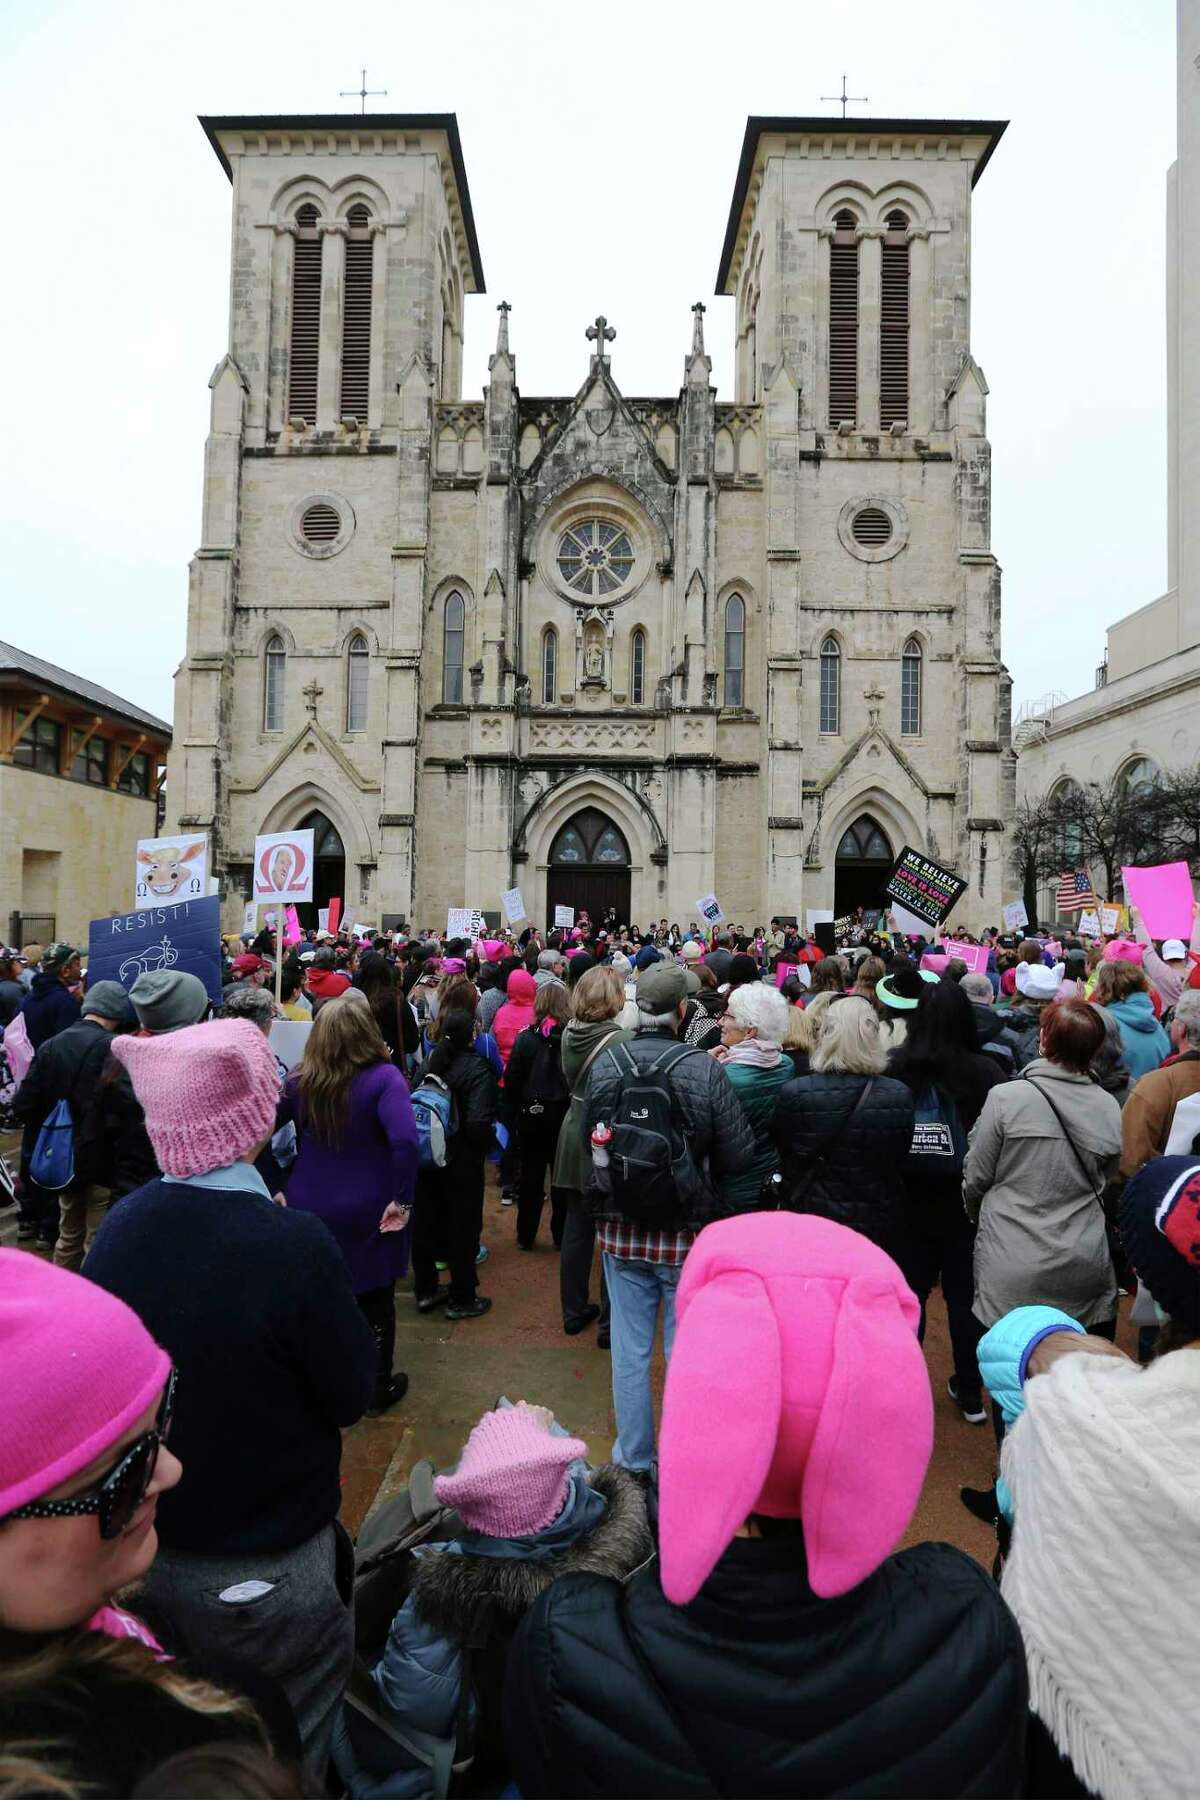 """About 500 people according to organizers gathered at Main Plaza to take part in the second annual Women's Rally on Saturday, Jan. 20, 2018. The message of the event hosted by TX23 Indivisible, was clear and decisive as speaker after speaker implored those in attendance that women's voices were not be silenced and to vote in upcoming elections. """"When women vote, we win,"""" said Cassandra Littlejohn, Bexar County Democratic Party Political Director. Toward the end of the two-hour rally, a brief march around Main Plaza came together as the event concluded."""